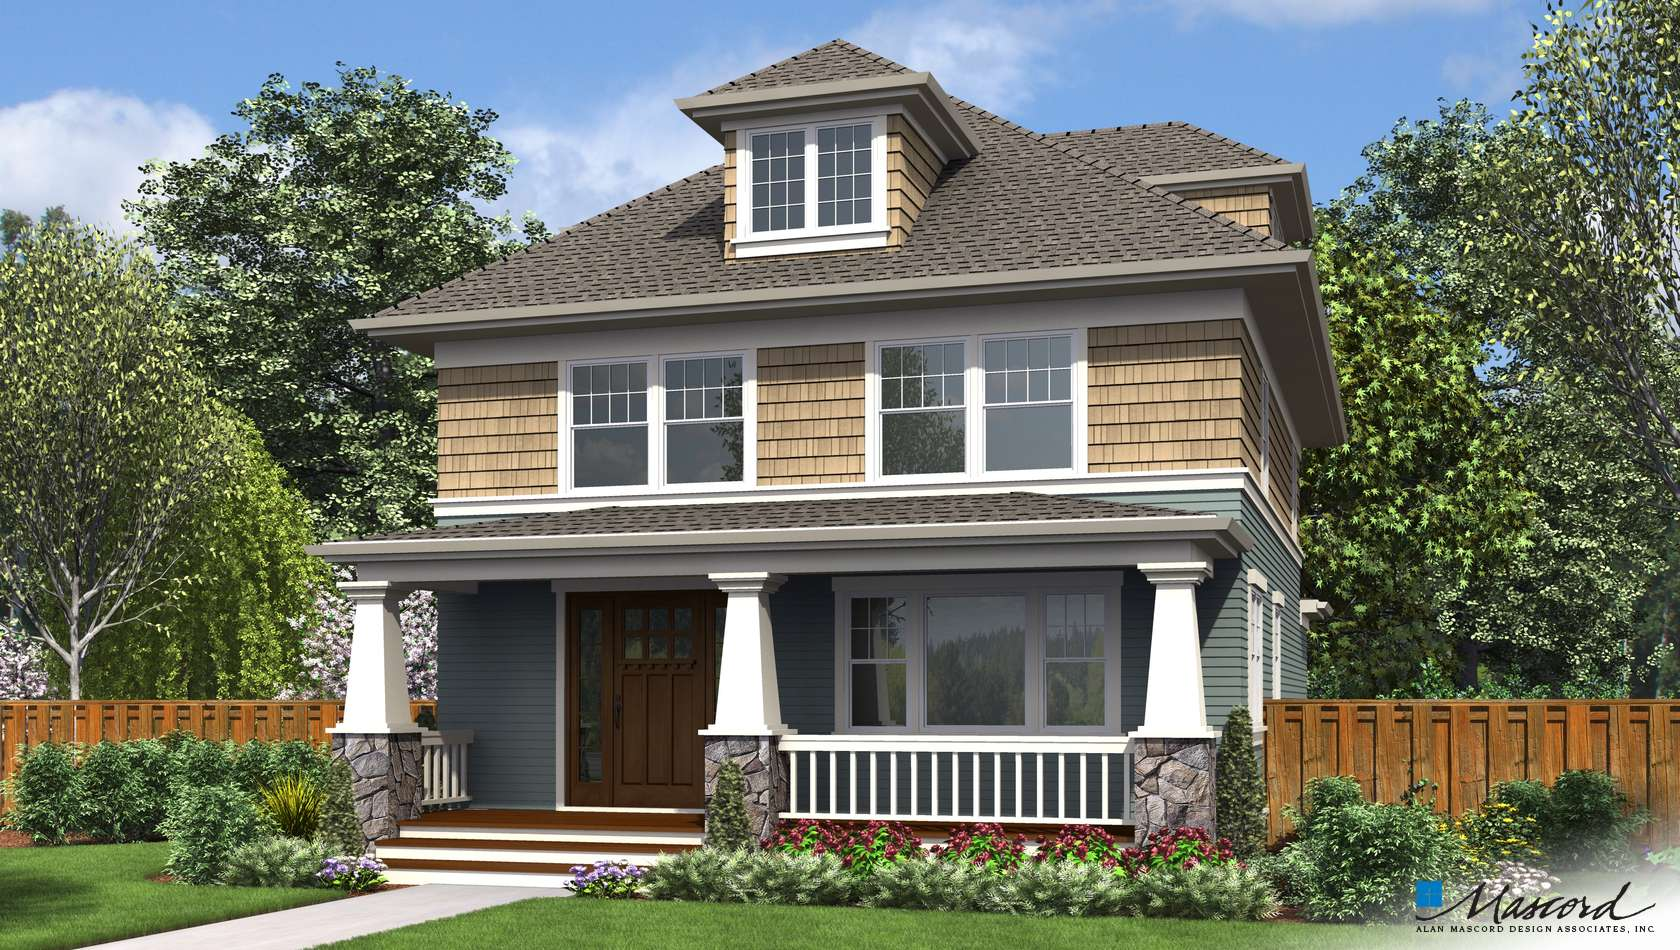 Main image for house plan 22214: The Waverly